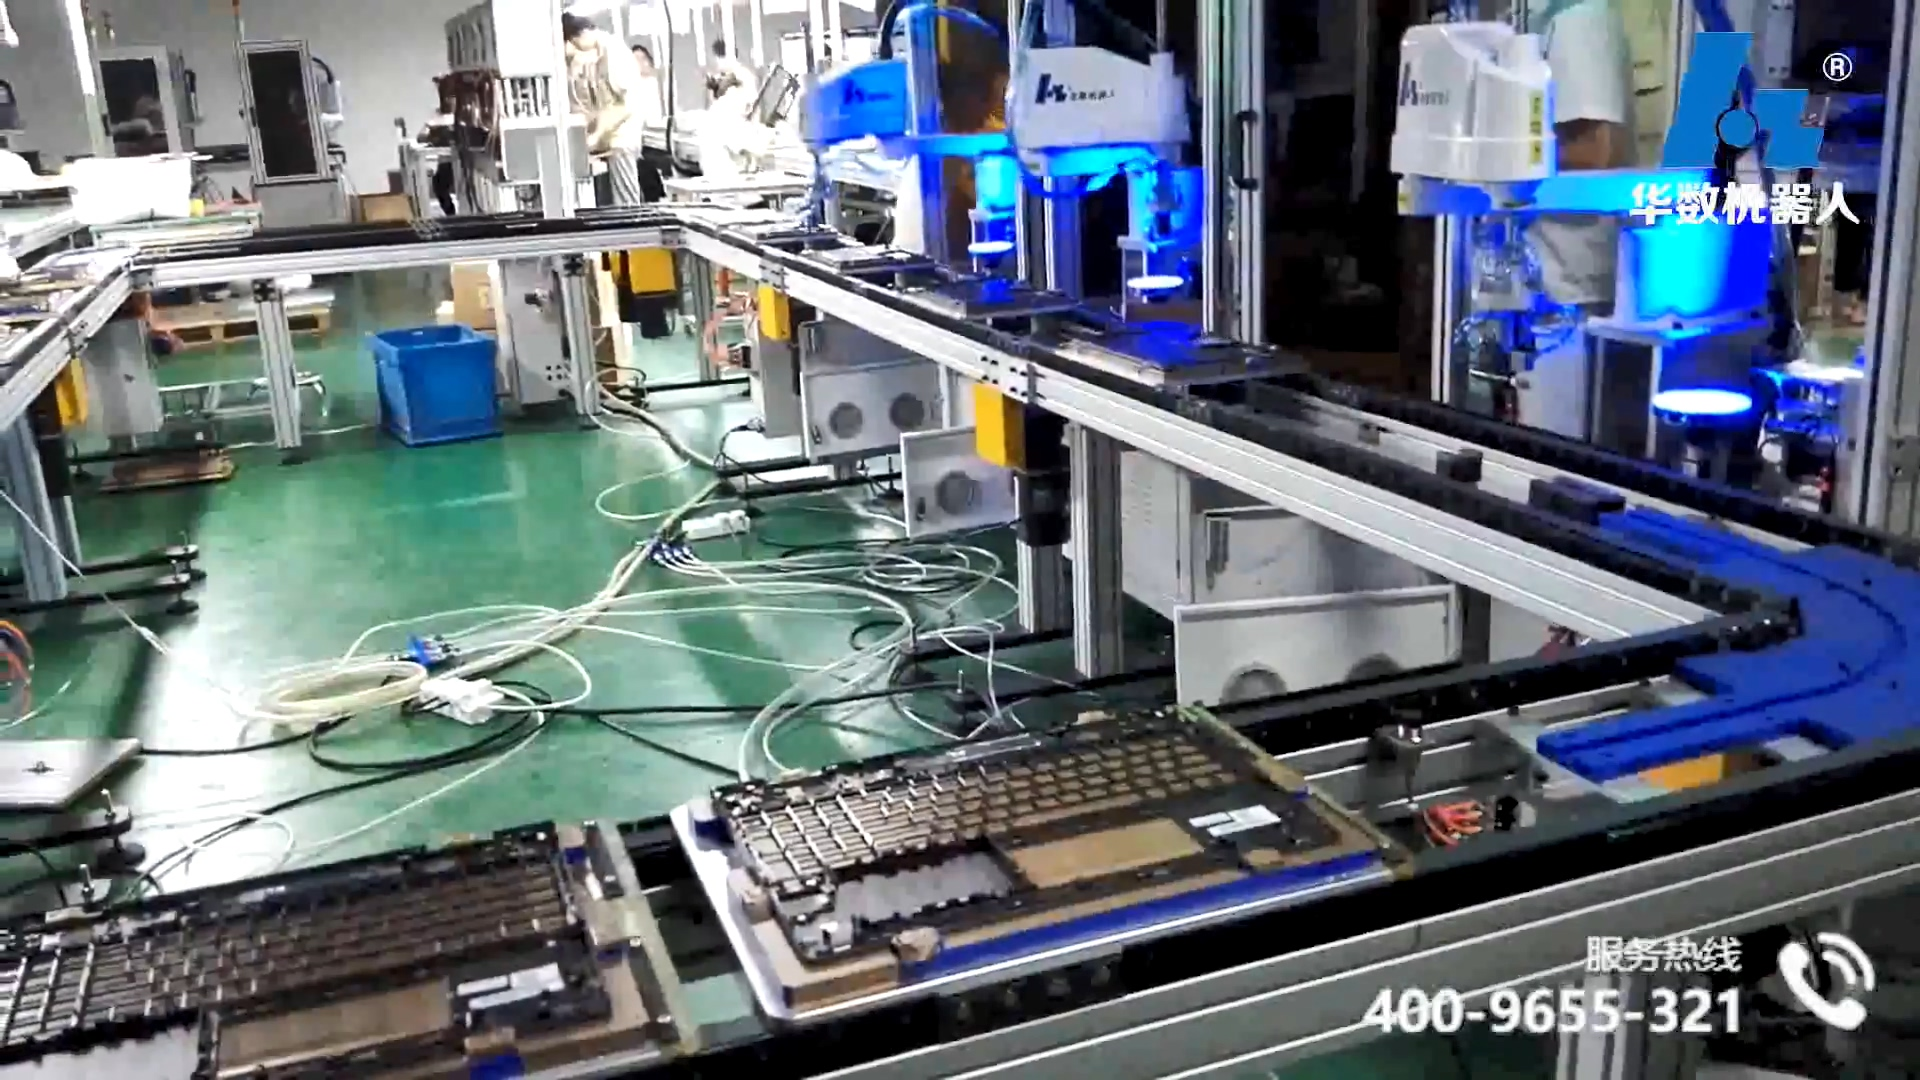 Scara electronic assembly line